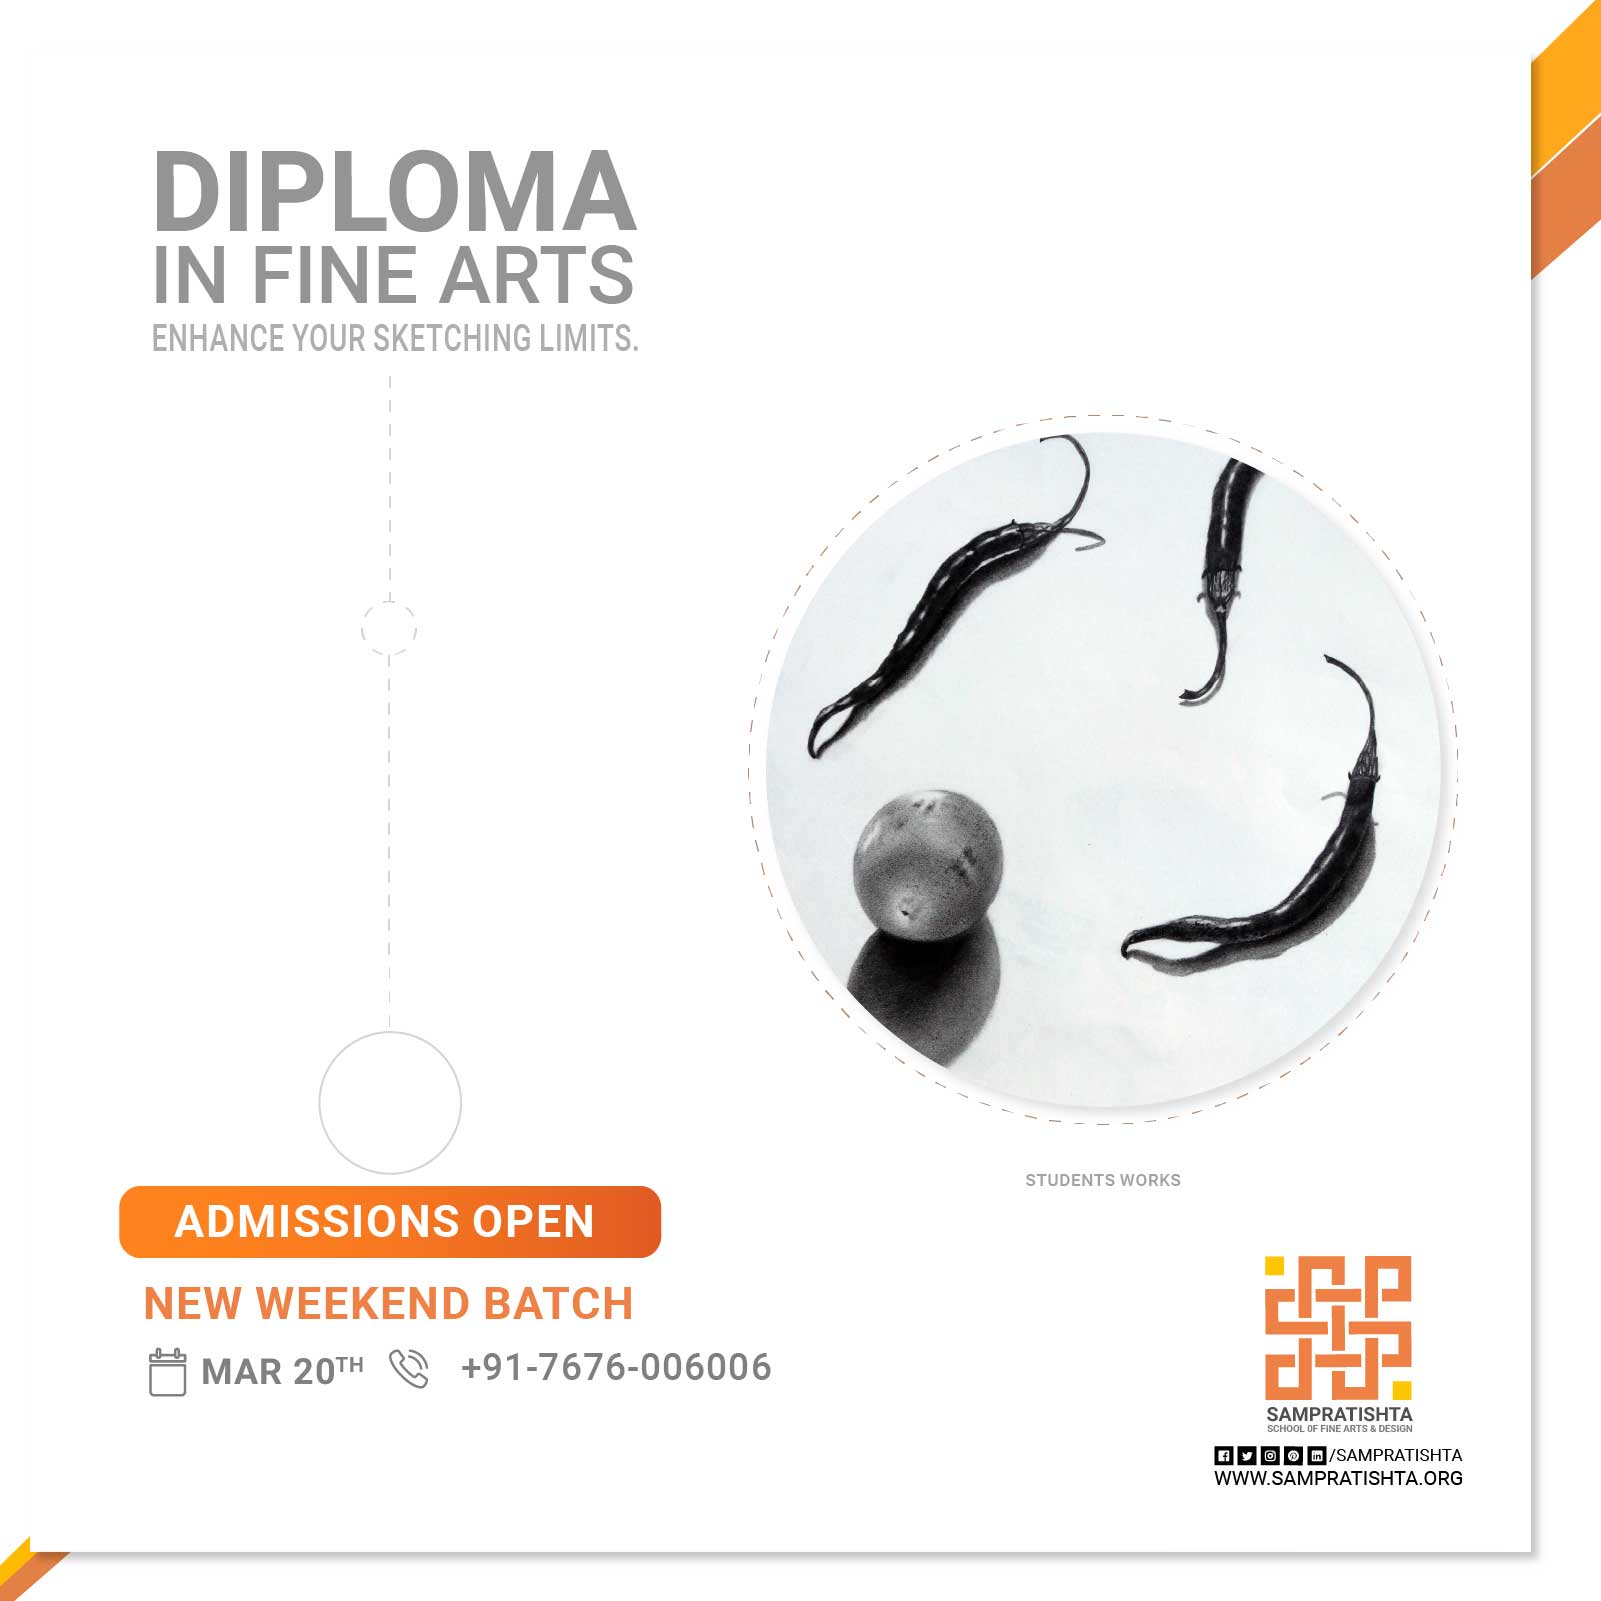 Diploma-in-Fine-Arts-Foundation_Sketching-classes-on-weekdays-in-Bangalore